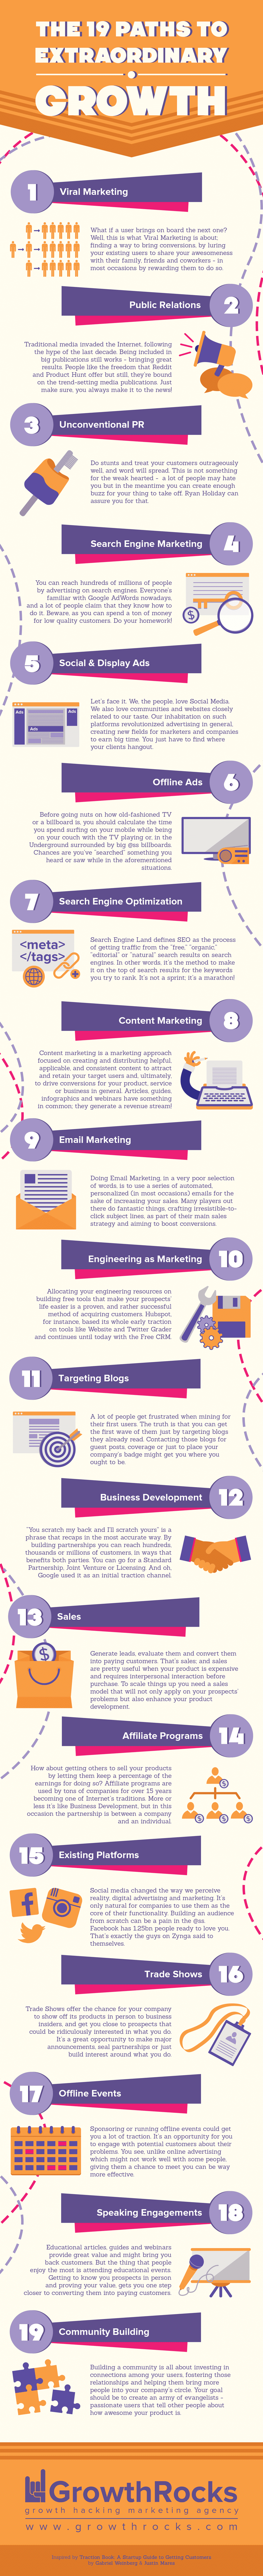 Internet Marketing Tips: The 19 Paths To Extraordinary Growth - #infographic